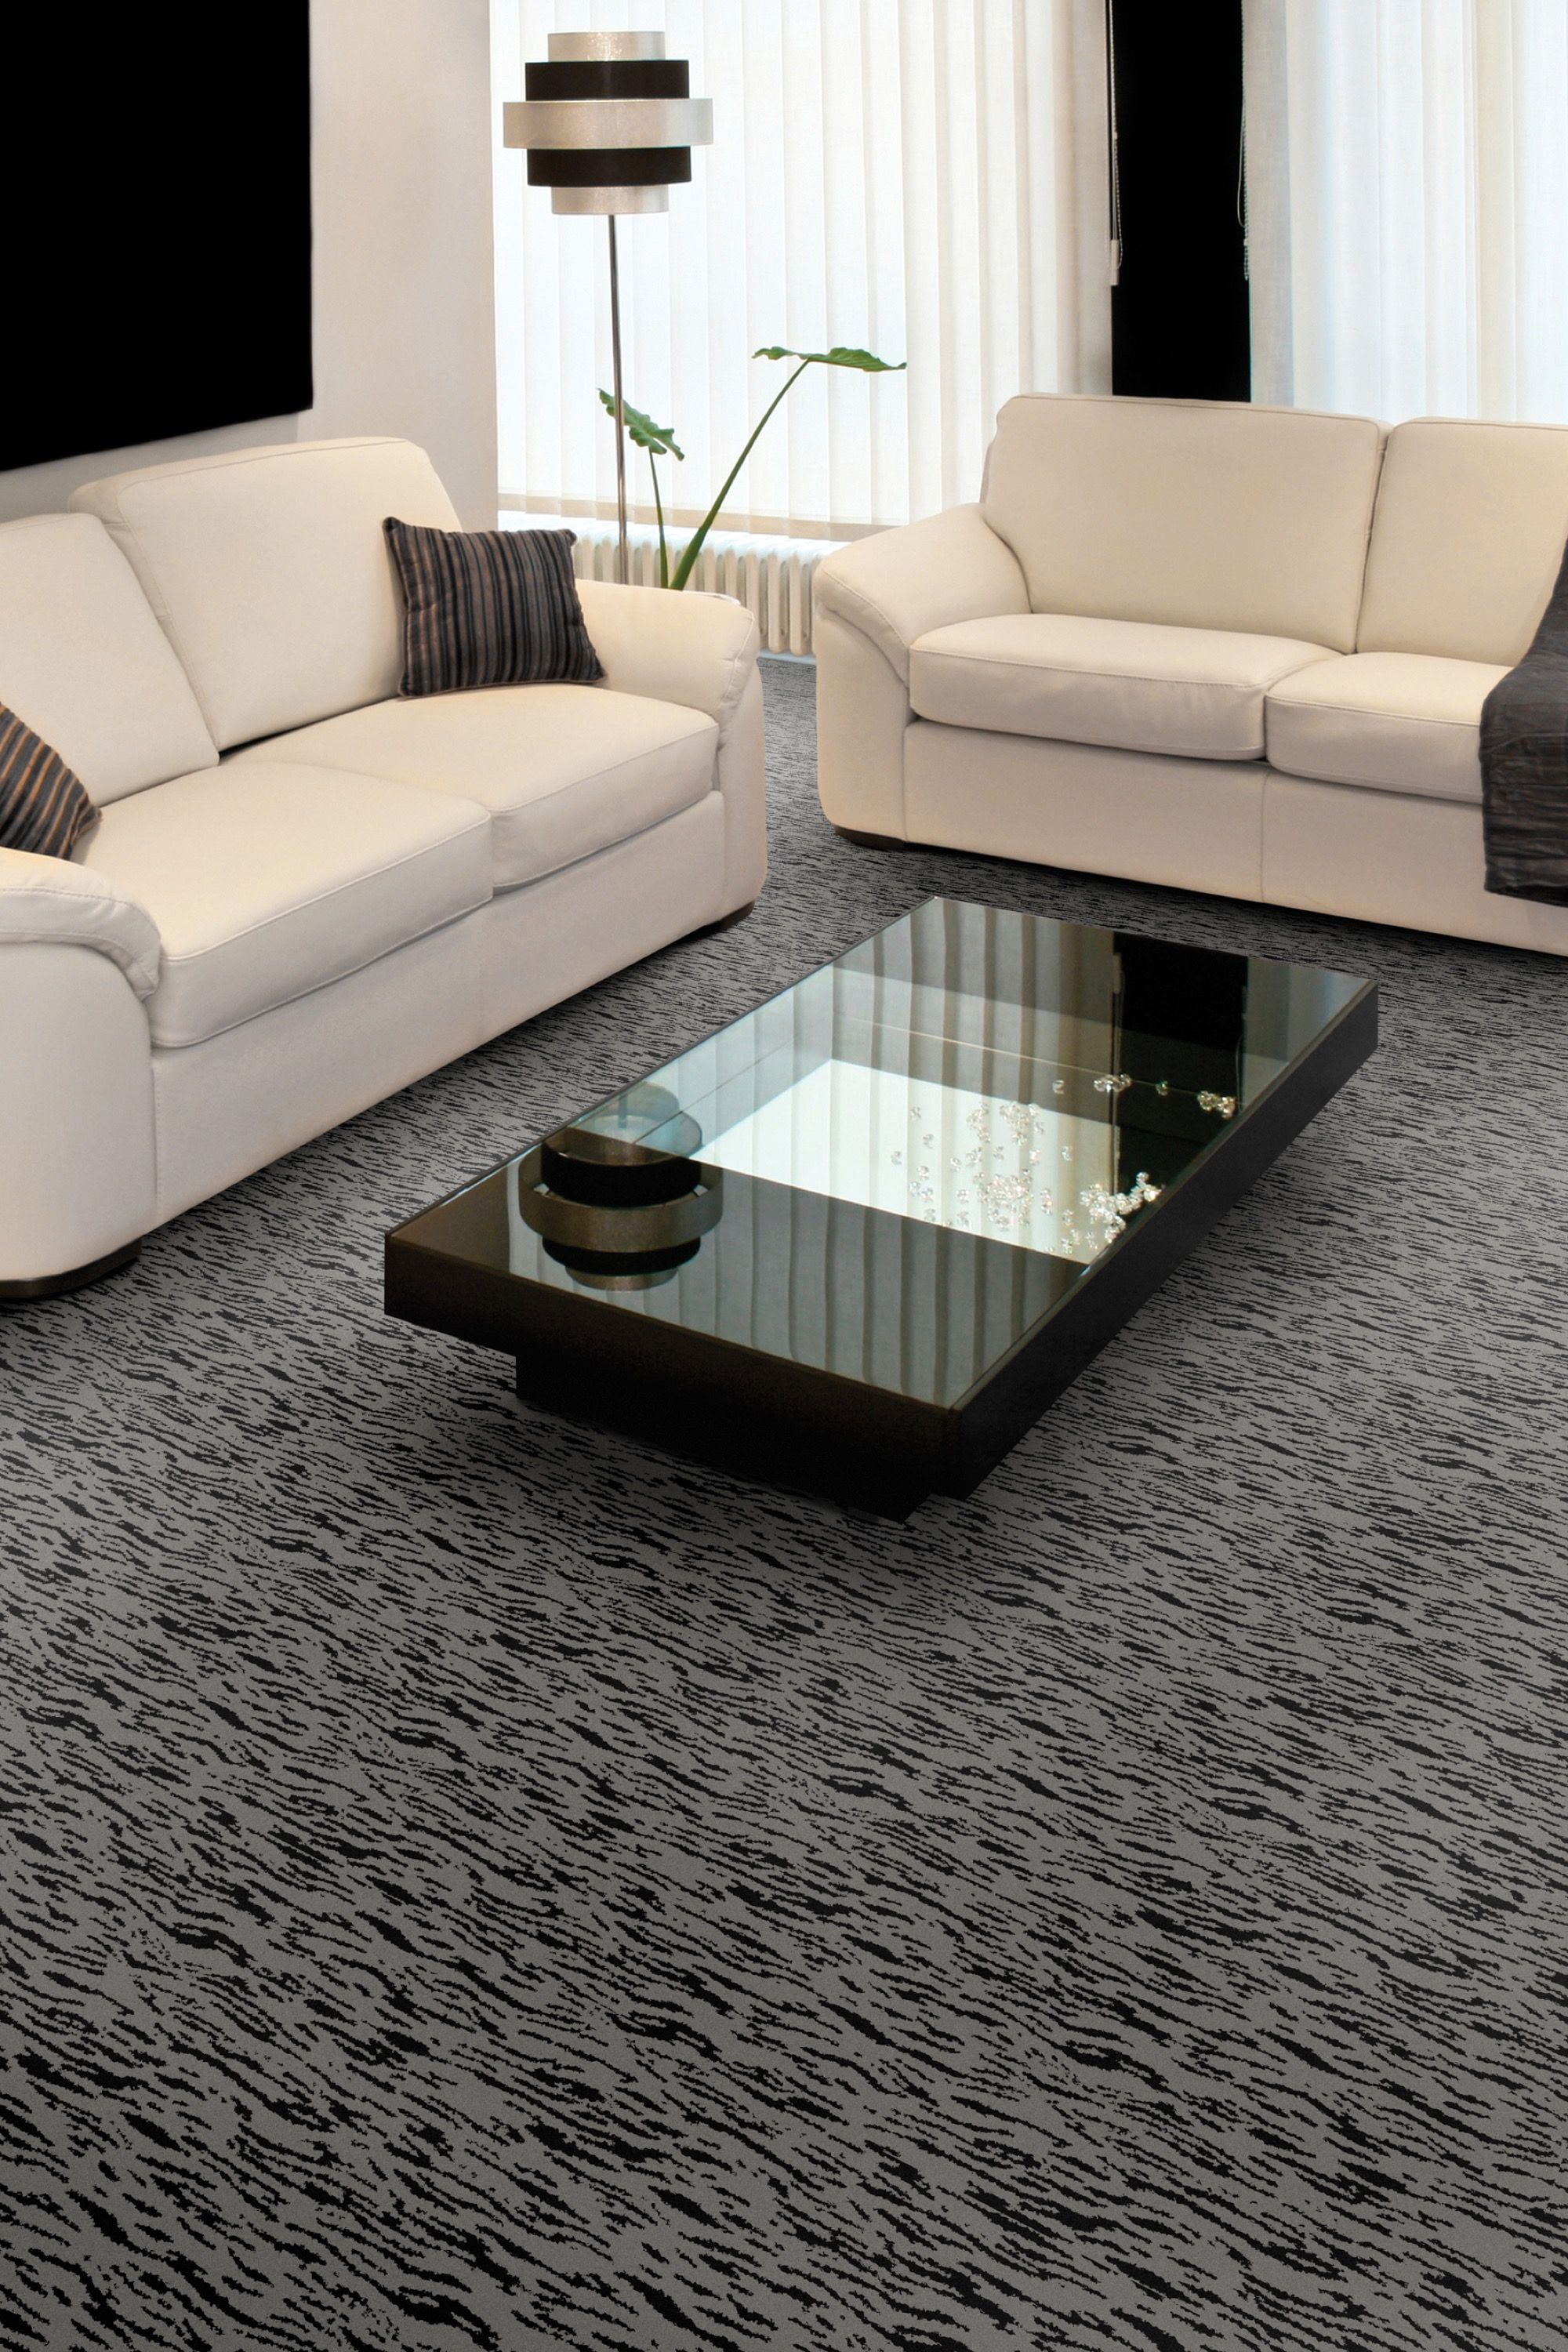 Living Room With Dark Comfortable Carpeting By Kane Covering The  # Muebles Sirena Animal Crossing